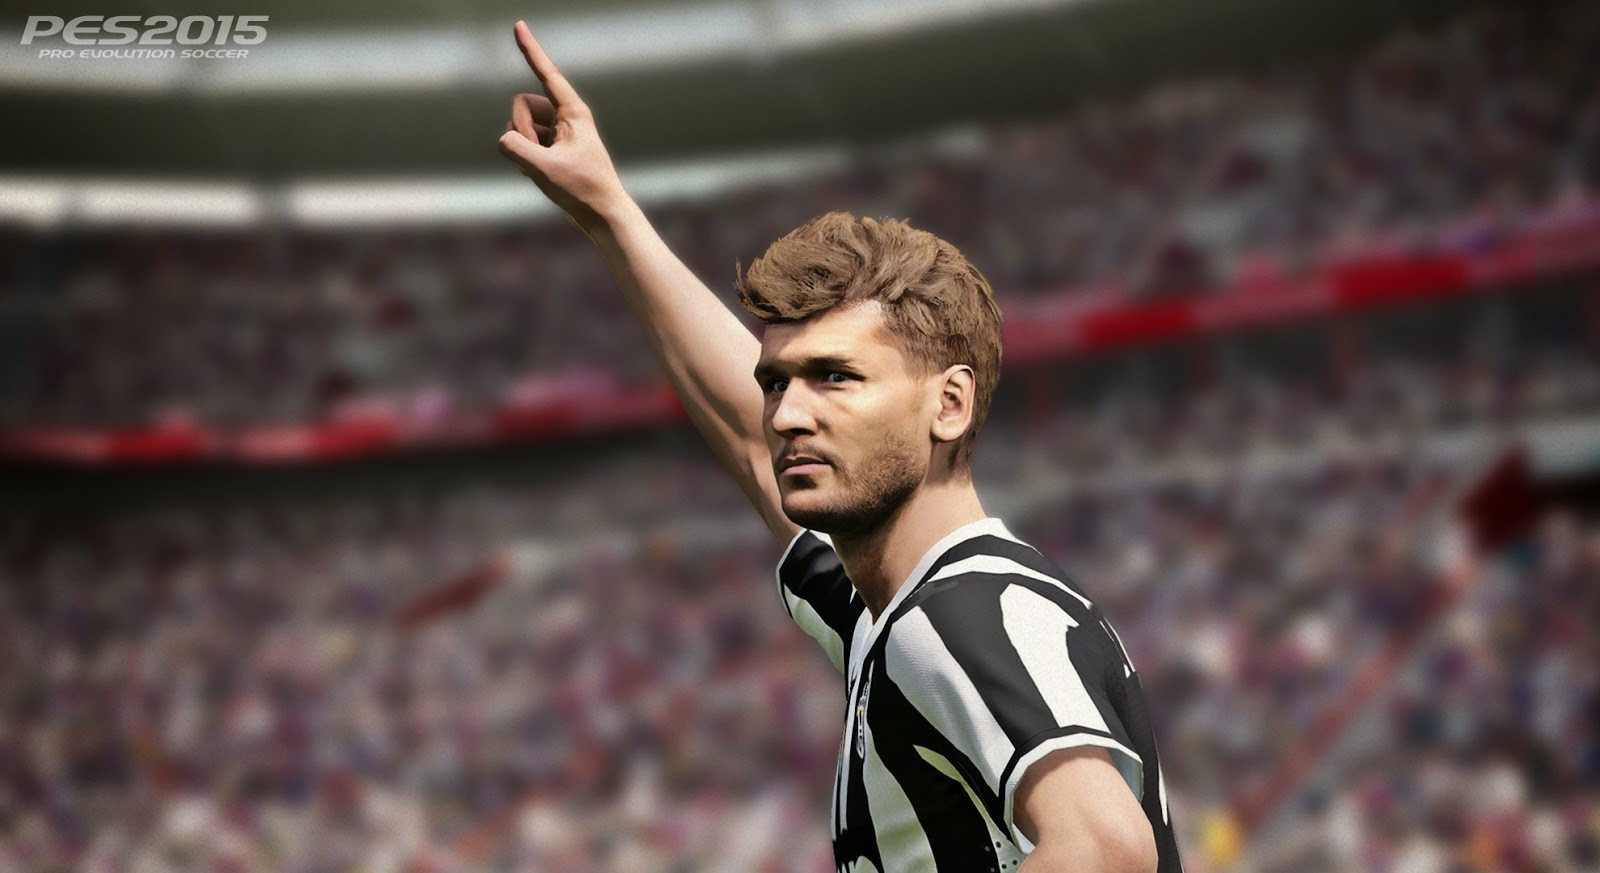 Llega el esperado trailer de Pro Evolution Soccer 2015 [VIDEO]